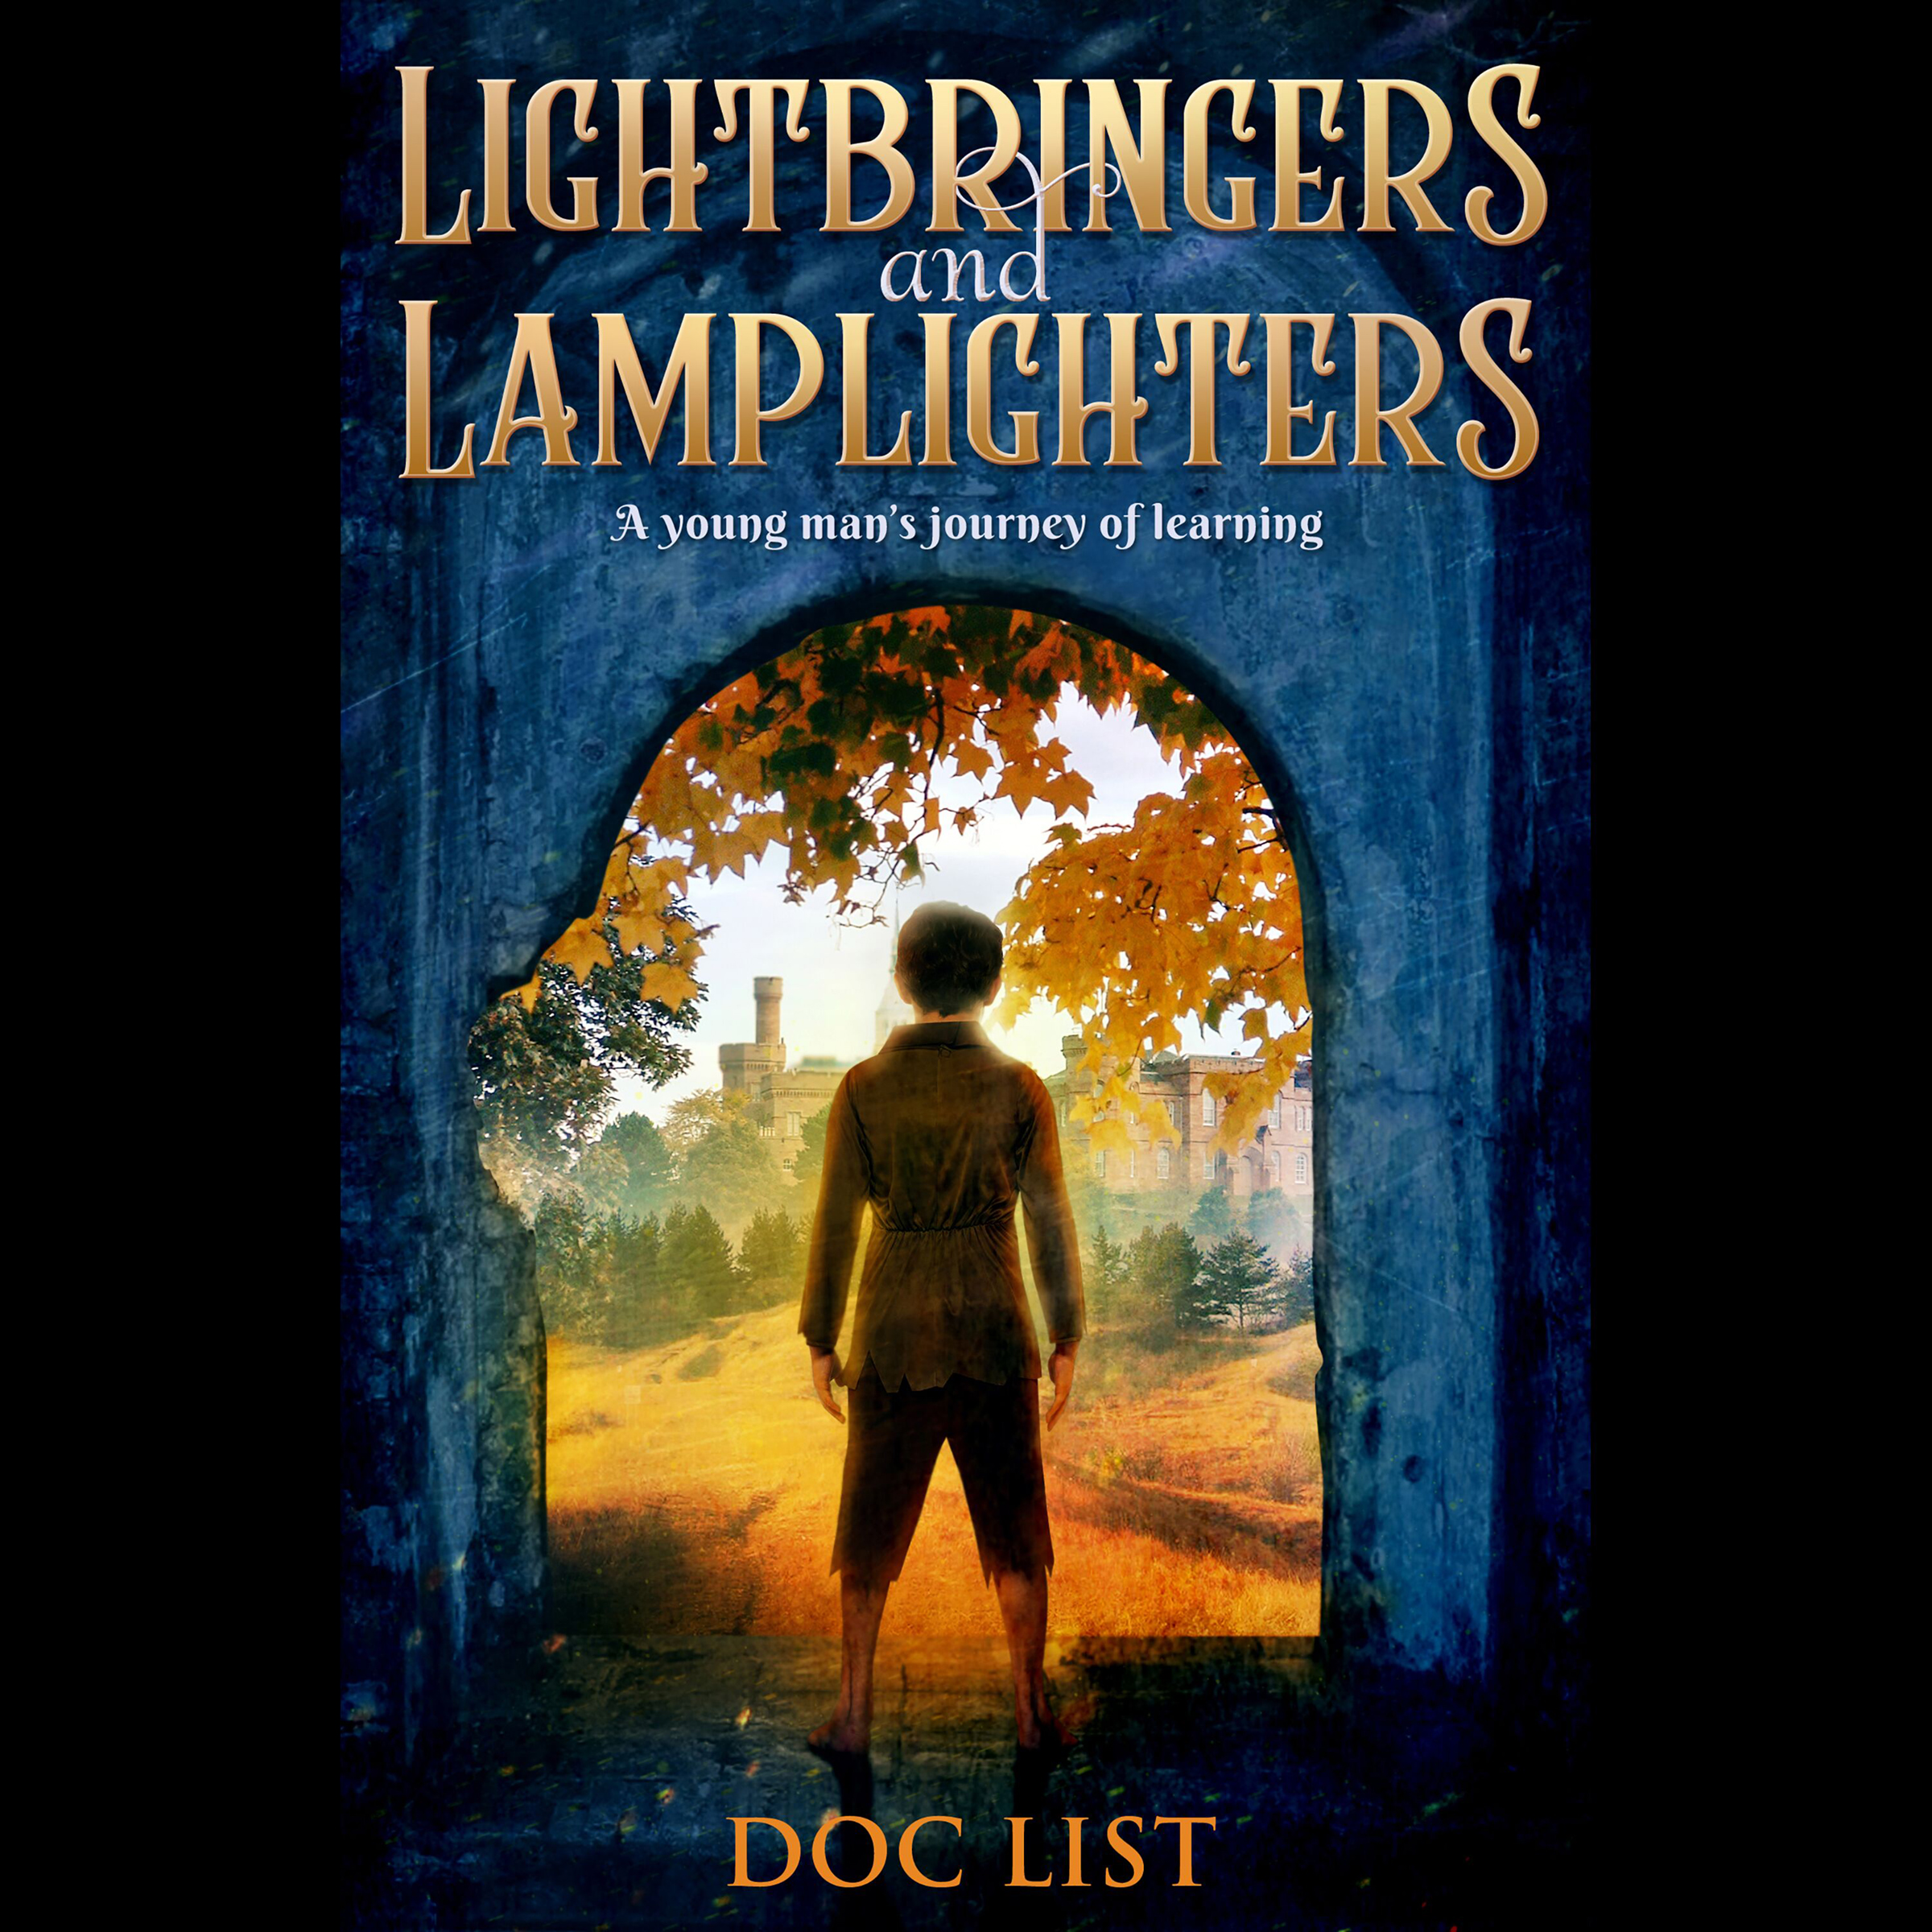 Lightbringers and Lamplighters  cover image